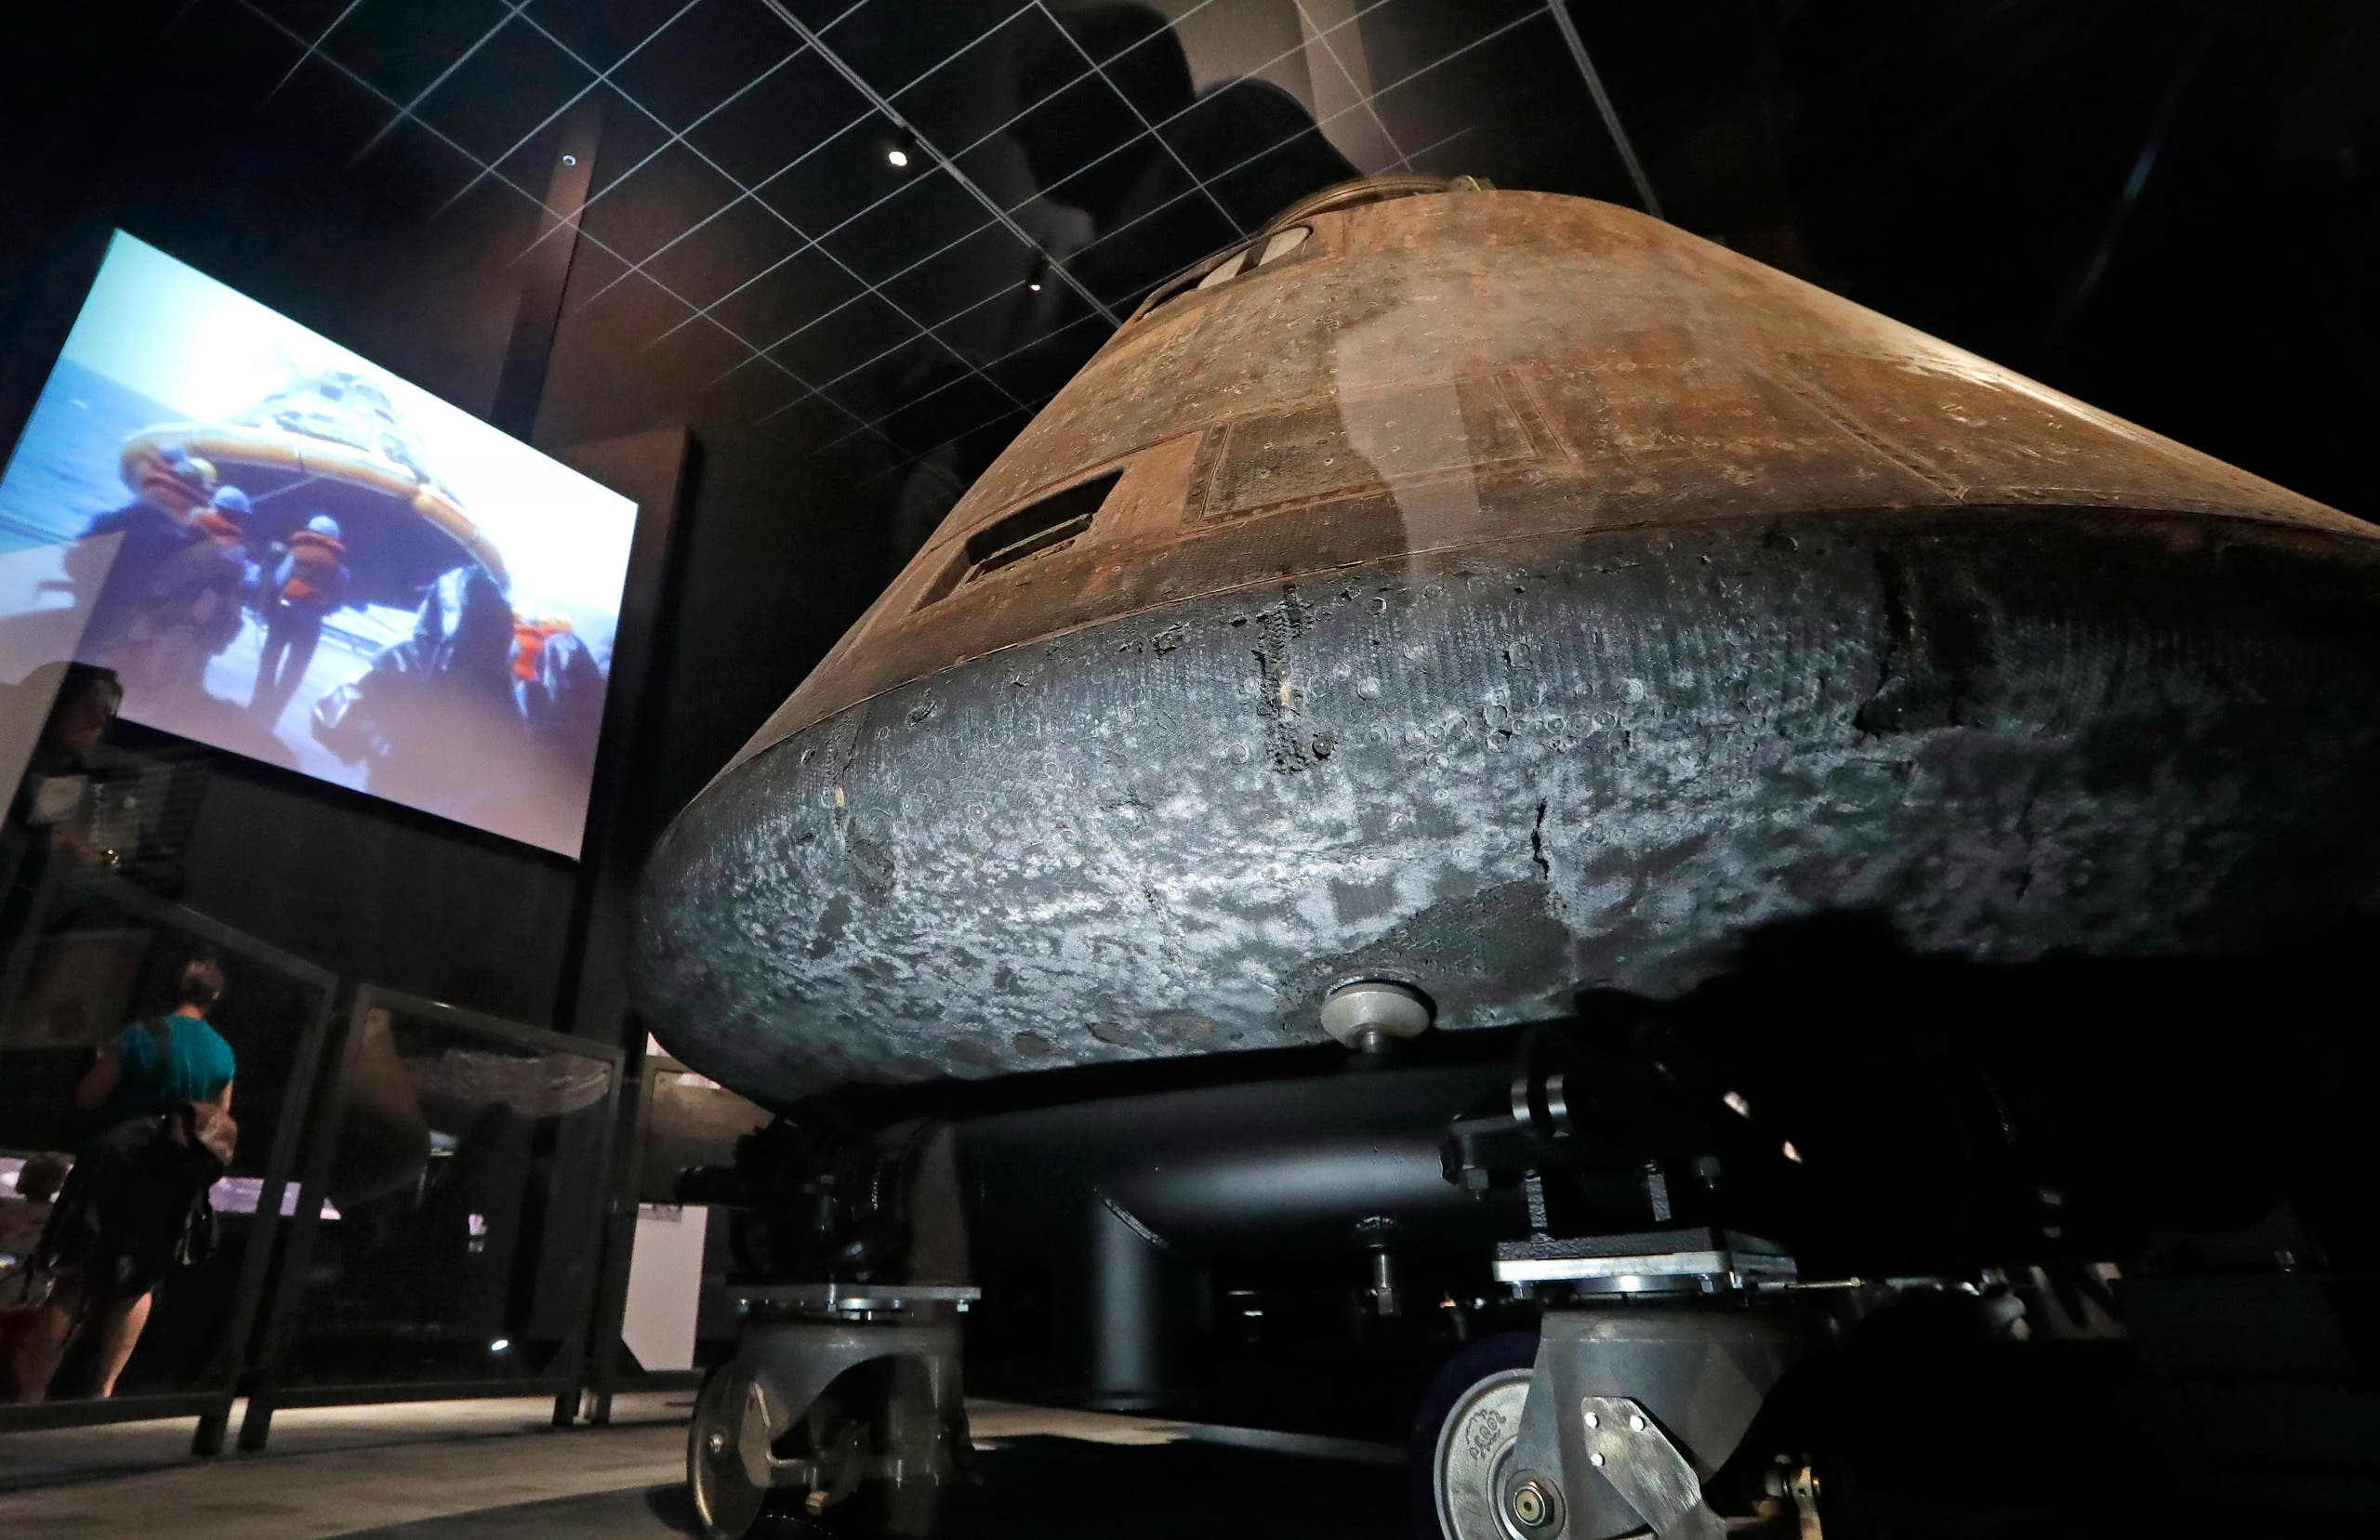 The NASA Apollo 11 command module Columbia, its bottom scorched and pitted from reentry into Earth's atmosphere decades earlier, is displayed at the centerpiece of an Apollo 11 mission exhibit at the Museum of Flight in Seattle. (AP)